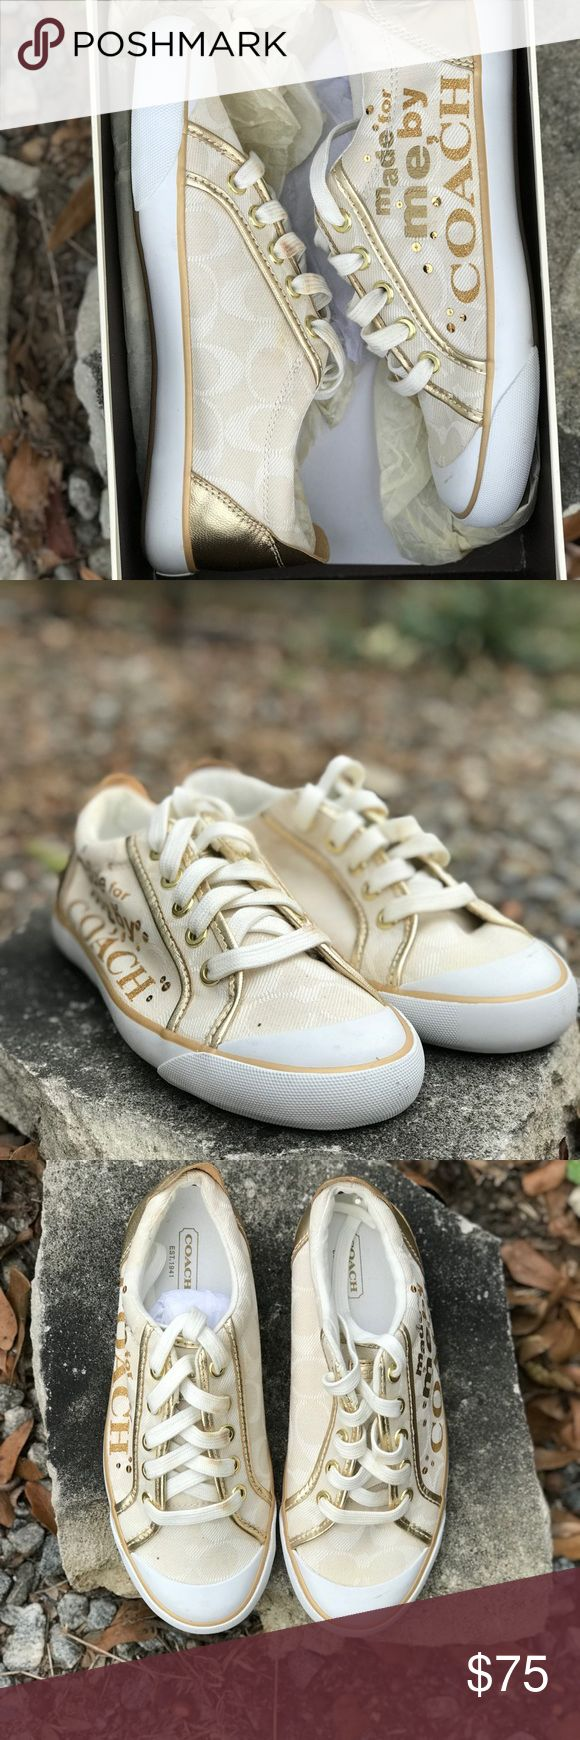 COACH tennis shoes BRAND NEW COACH tennis shoes.                Laces are slightly discolored due to brass on shoe lace holes                                            Brand new, never worn.                                   Size 6 1/2 Coach Shoes Sneakers